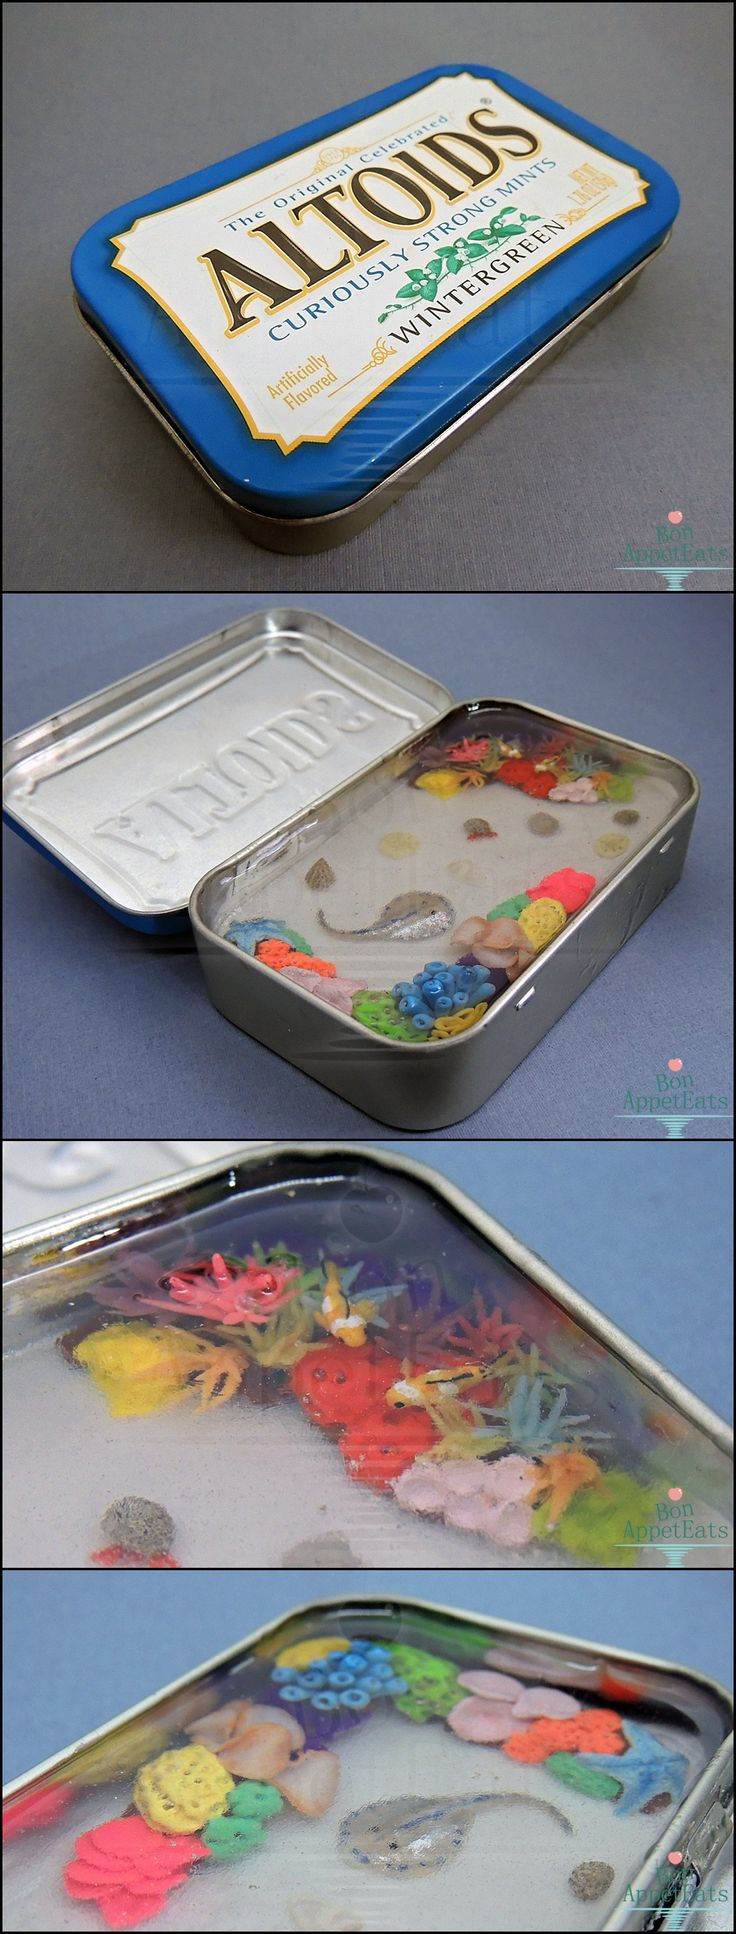 Miniature Coral Reef Tin for Sale now on eBay! http://www.ebay.com/itm/271511842314?ssPageName=STRK:MESCX:IT&_trksid=p3984.m1554.l2649